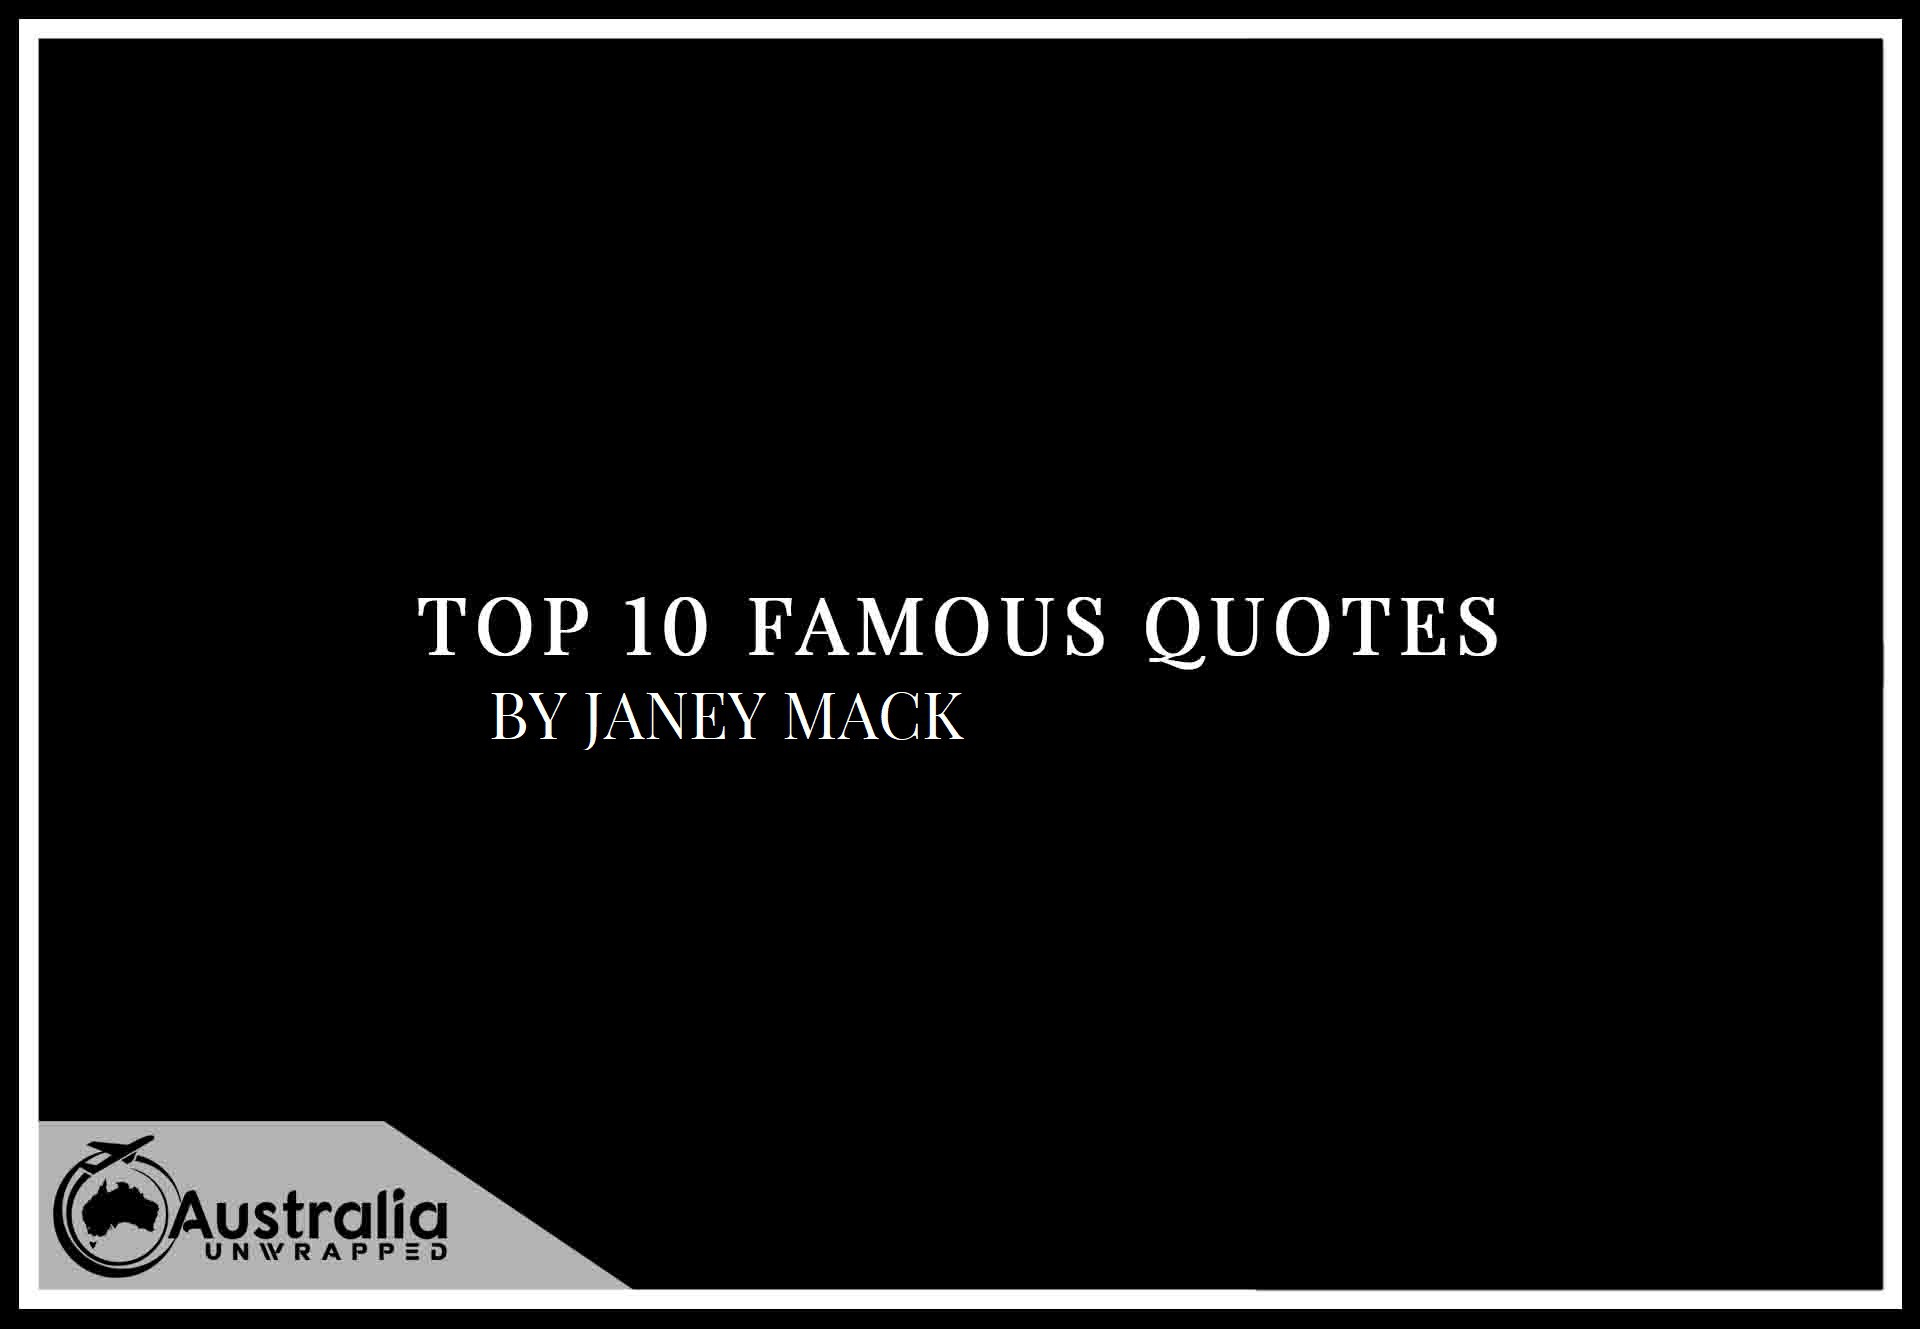 Top 10 Famous Quotes by Author Janey Mack